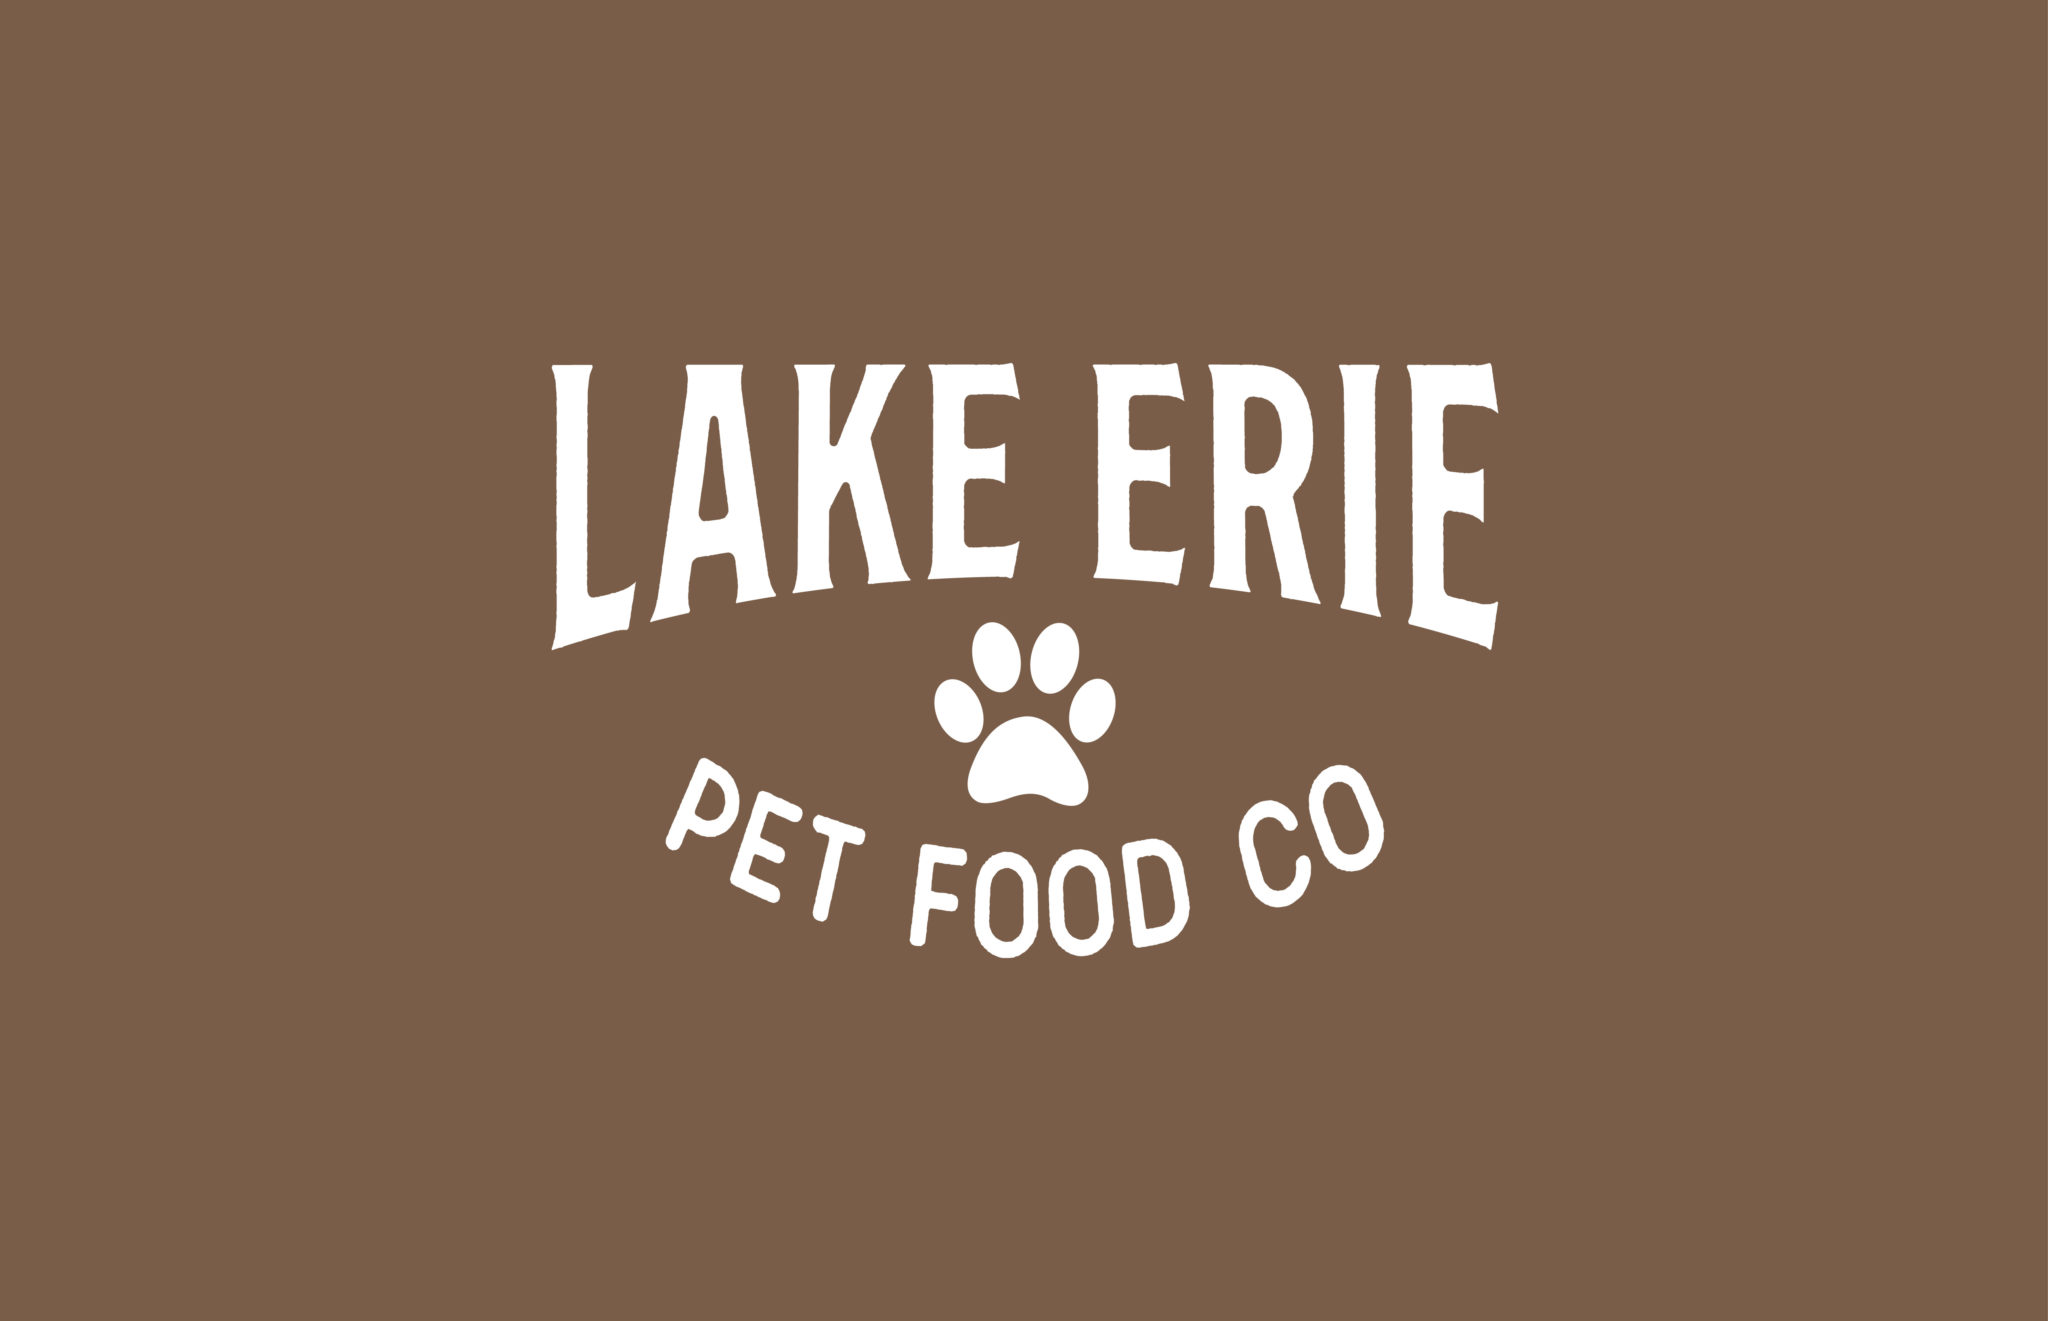 Lake Erie Pet Food Co. logo design by Dox Design